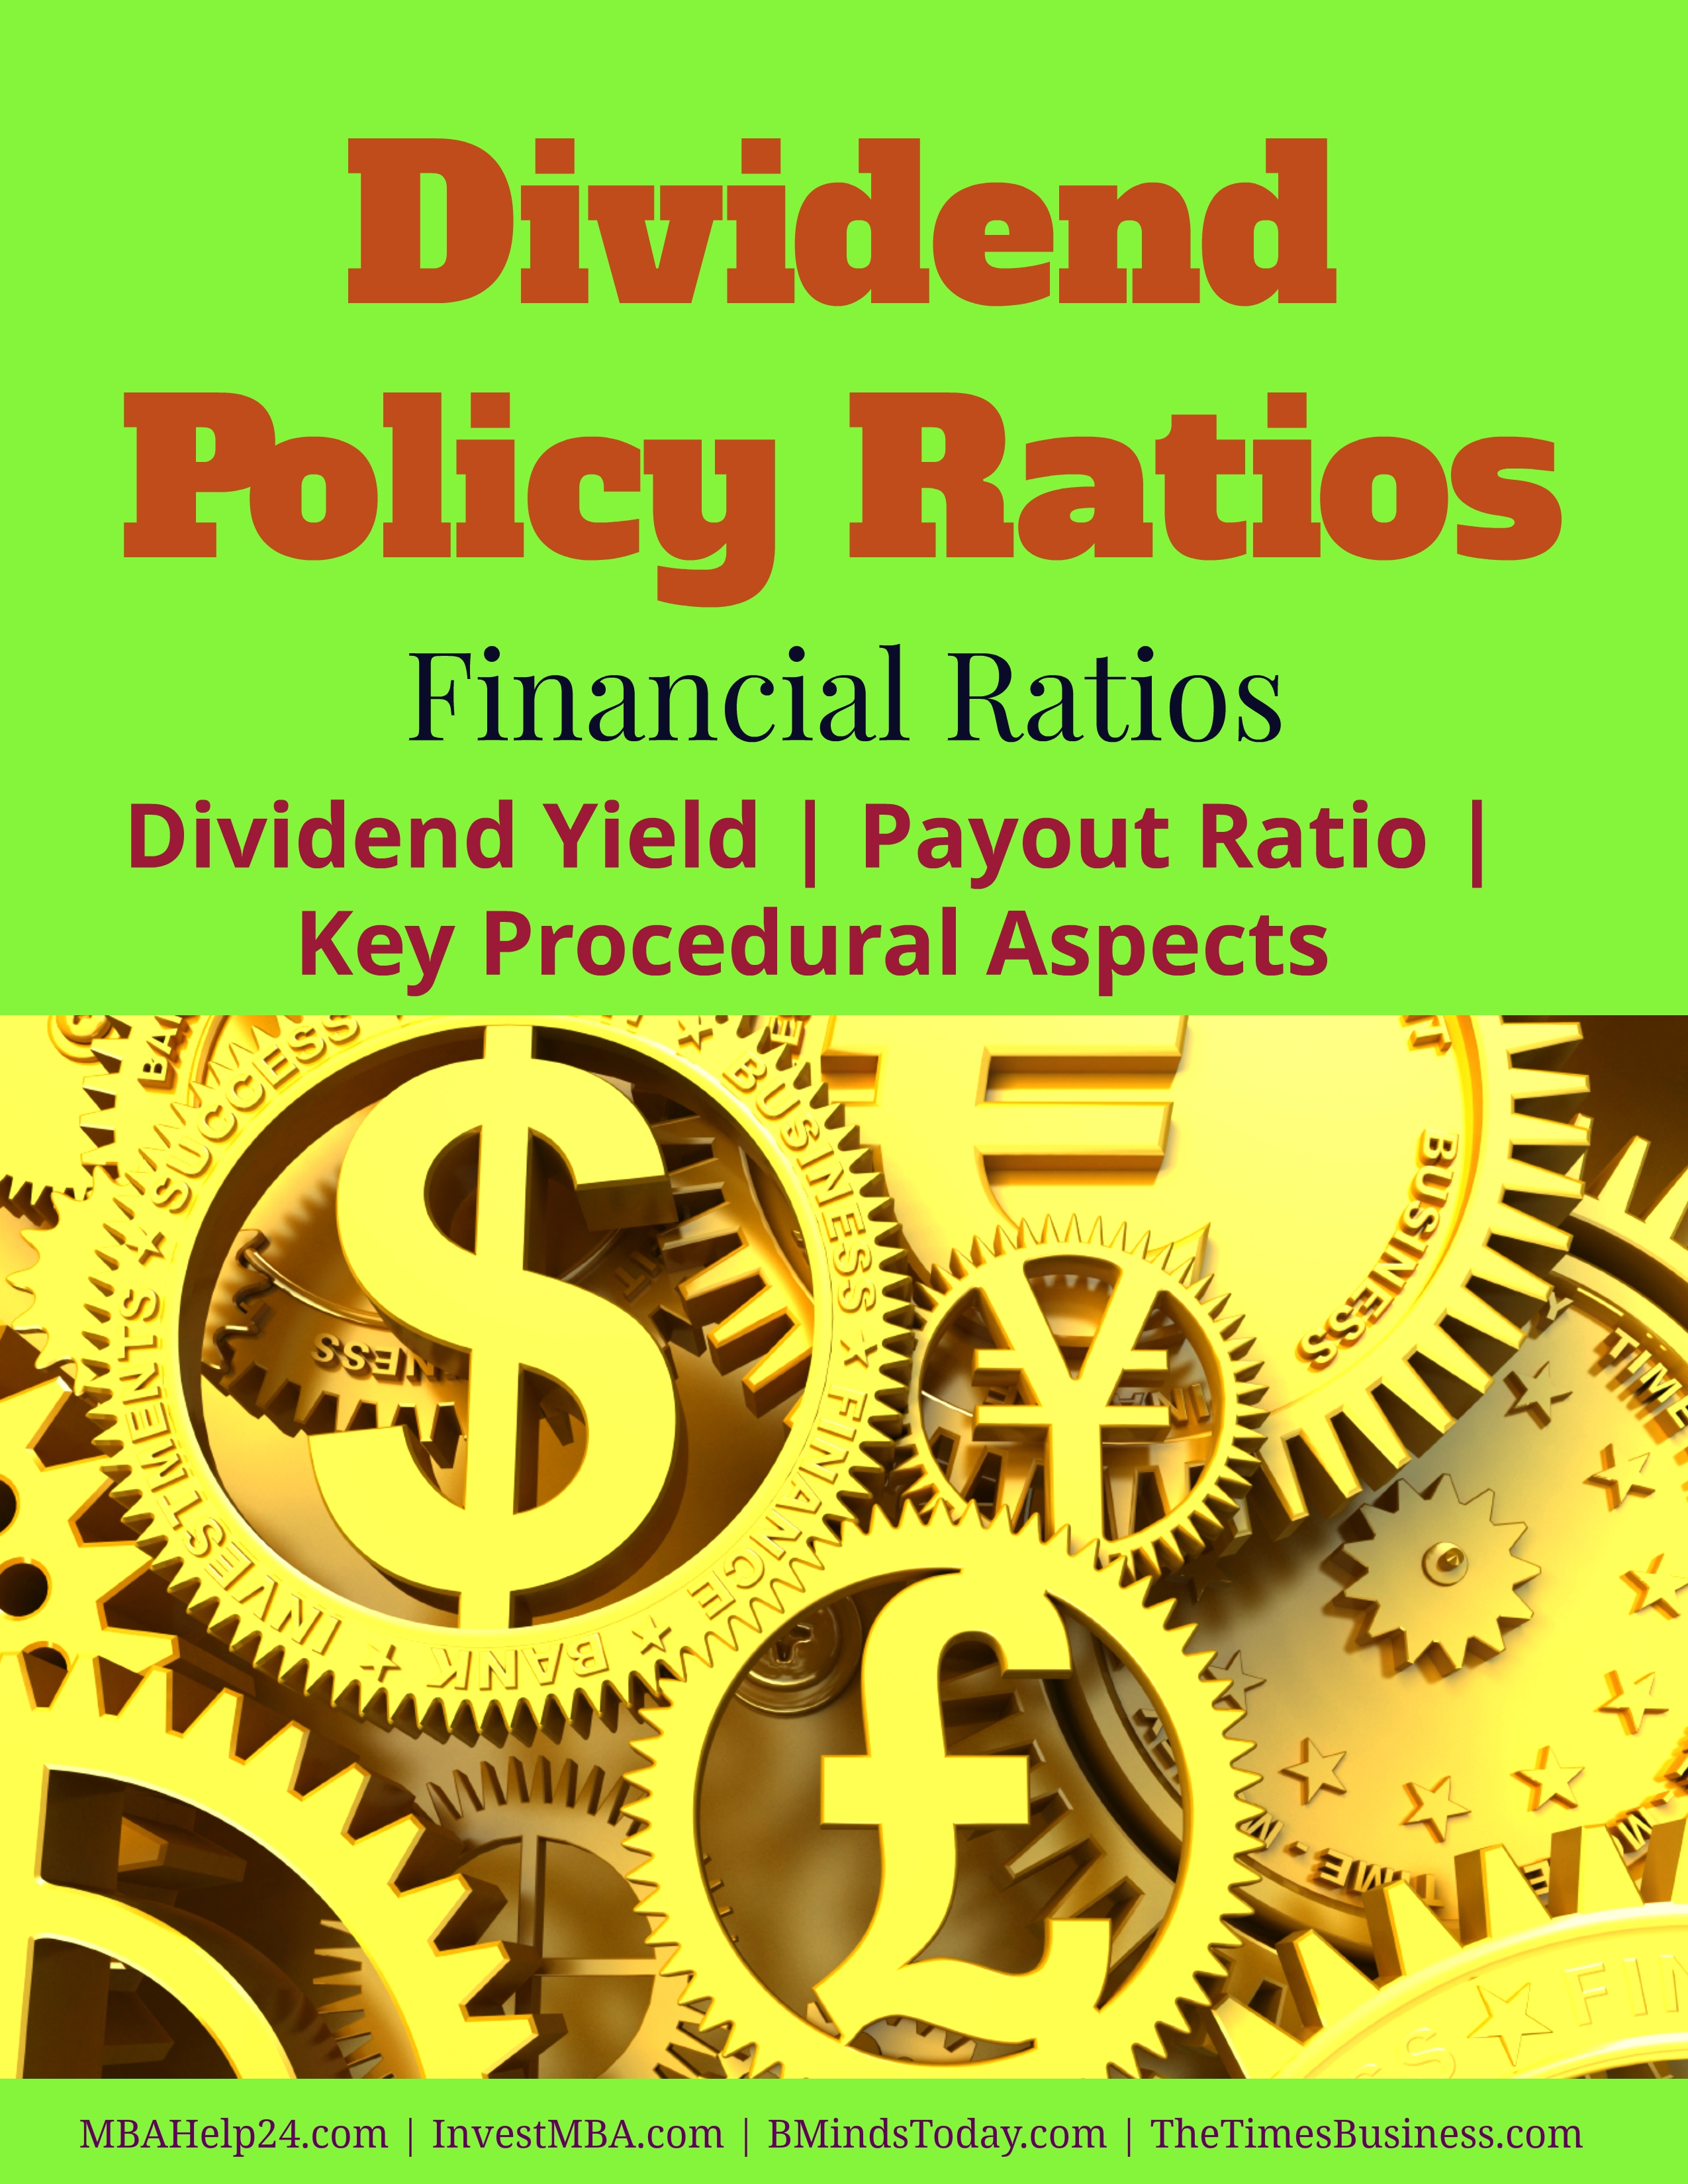 Dividend Policy Ratios- Dividend Yield, Payout Ratio, Key Procedural Aspects Dividend Policy Ratios Dividend Policy Ratios | Dividend Yield | Payout Ratio | Key Procedural Aspects Dividend Policy Ratios Dividend Yield Payout Ratio Key Procedural Aspects